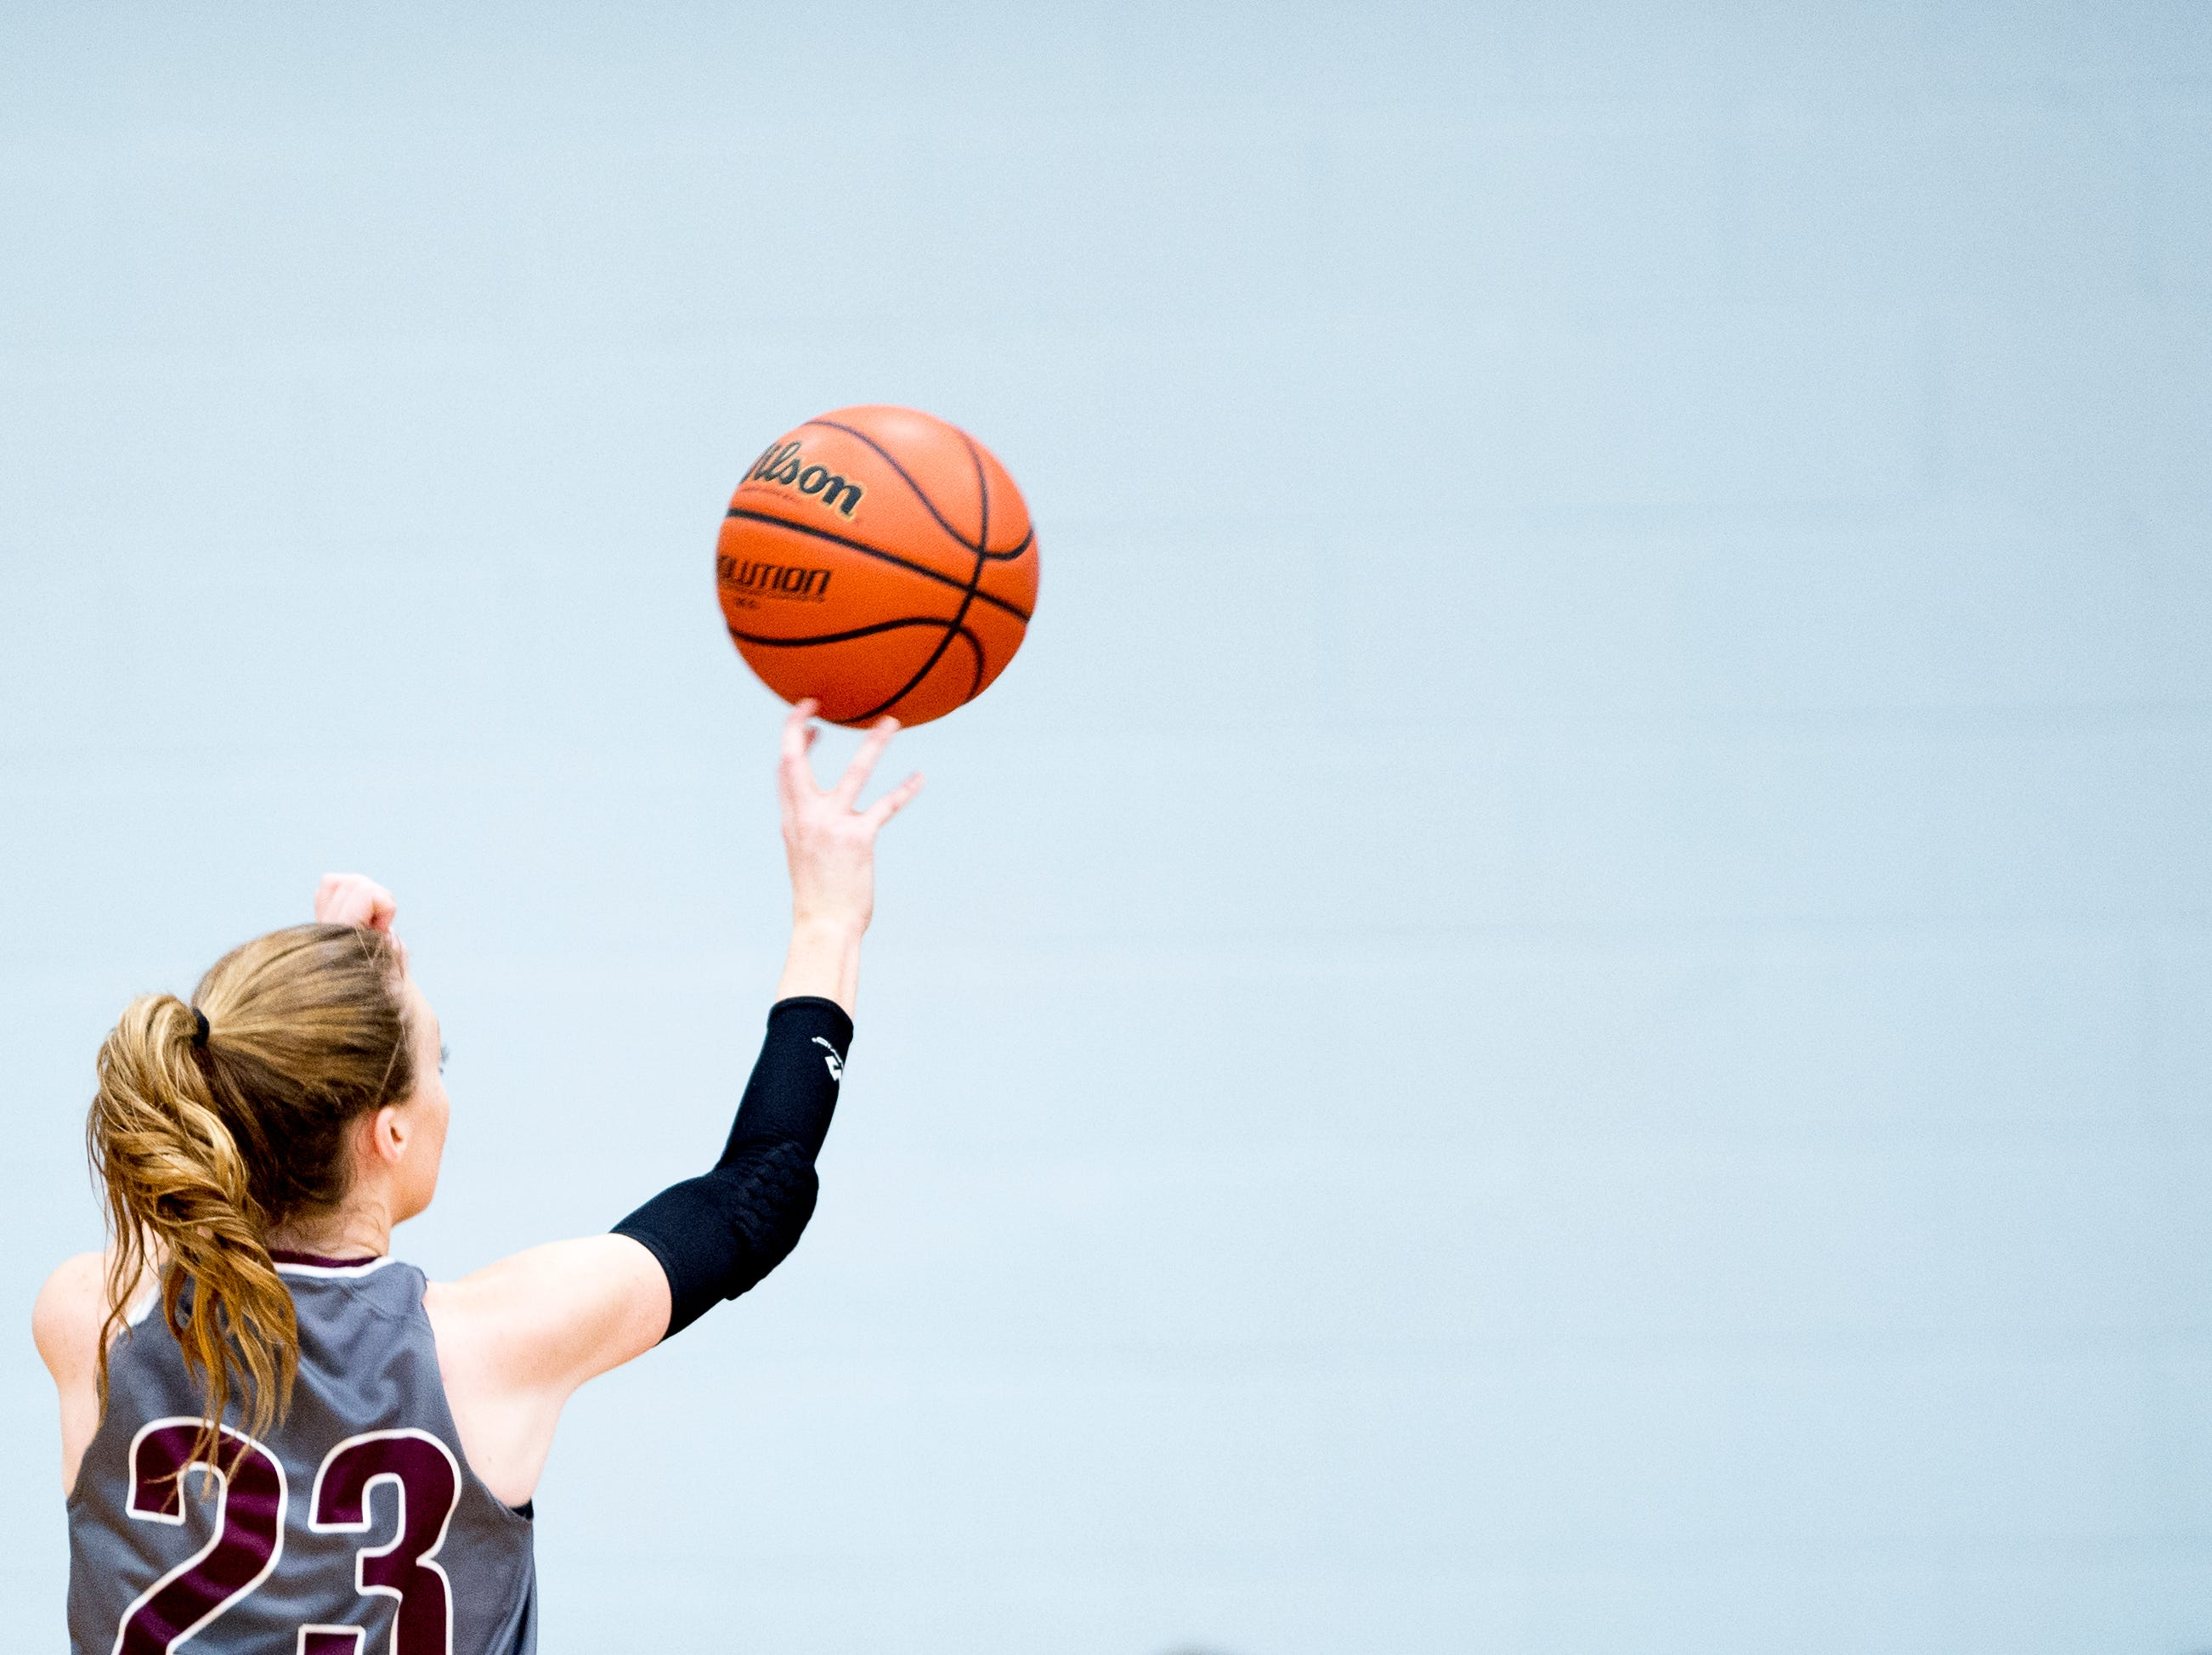 Alcoa's Destiny Haworth (23) shoots the ball during a game between Austin-East and Alcoa at Austin-East High School in Knoxville, Tennessee on Friday, January 18, 2019.